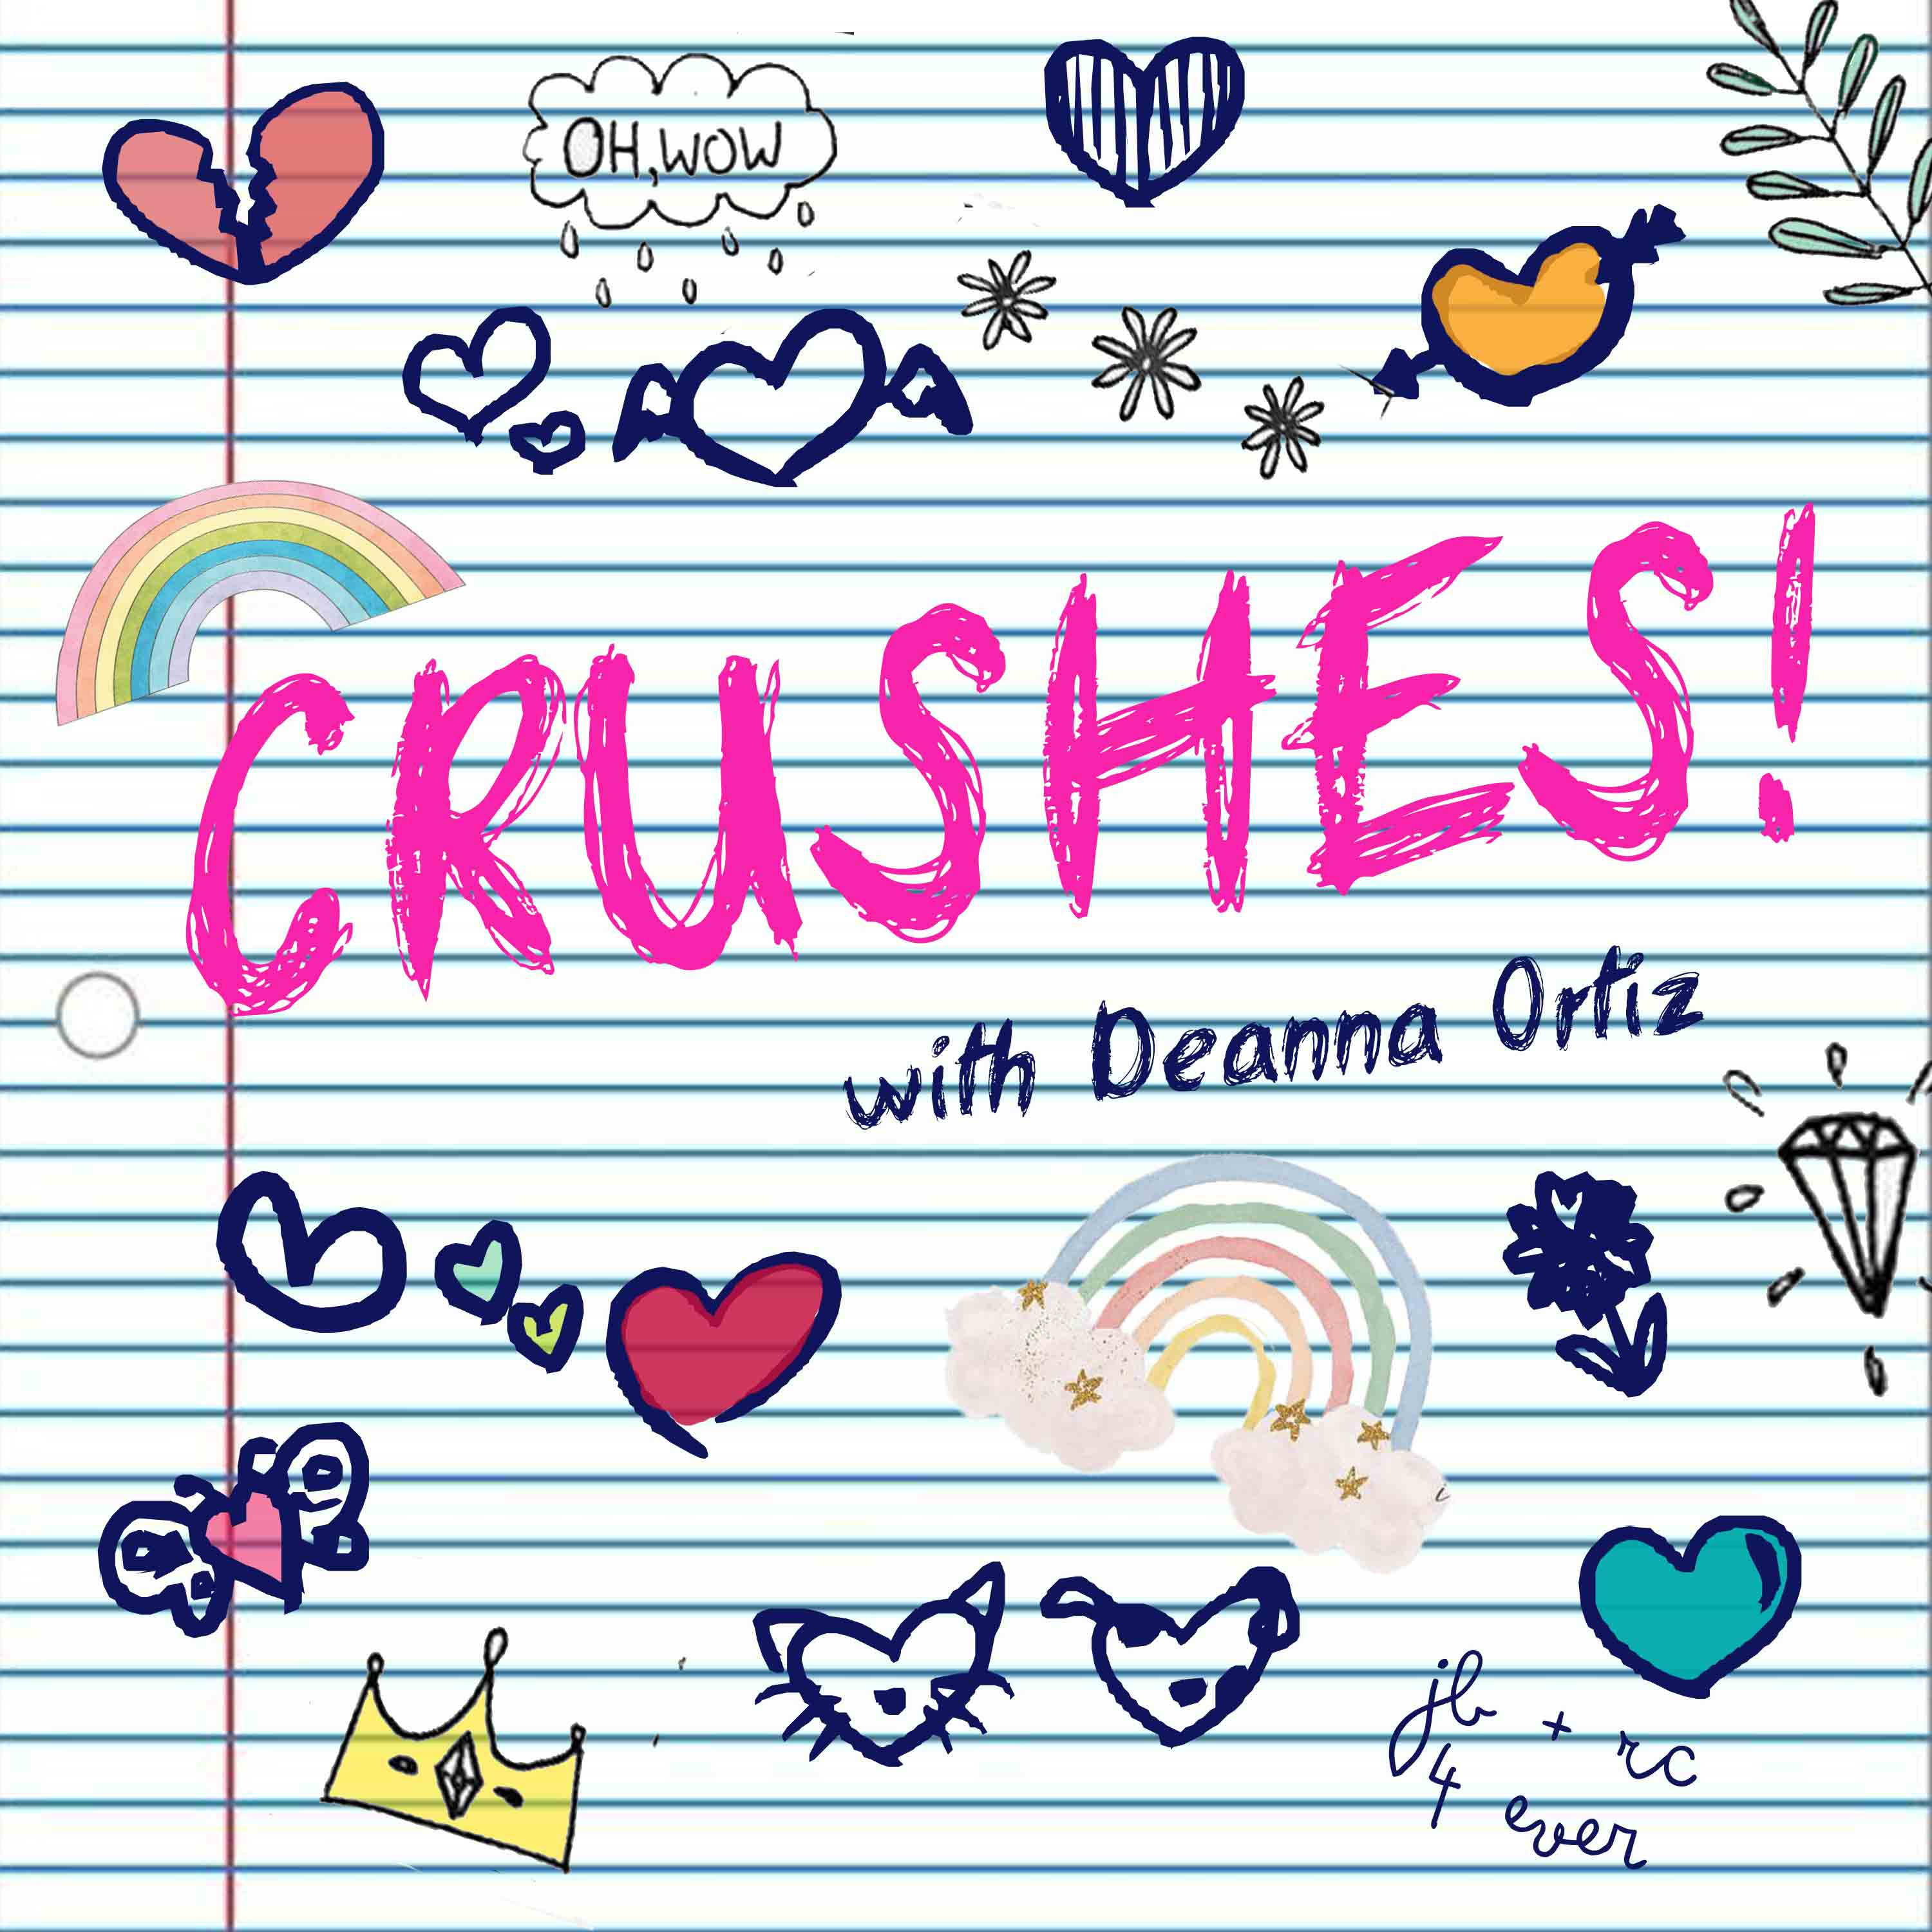 Crushes! show image